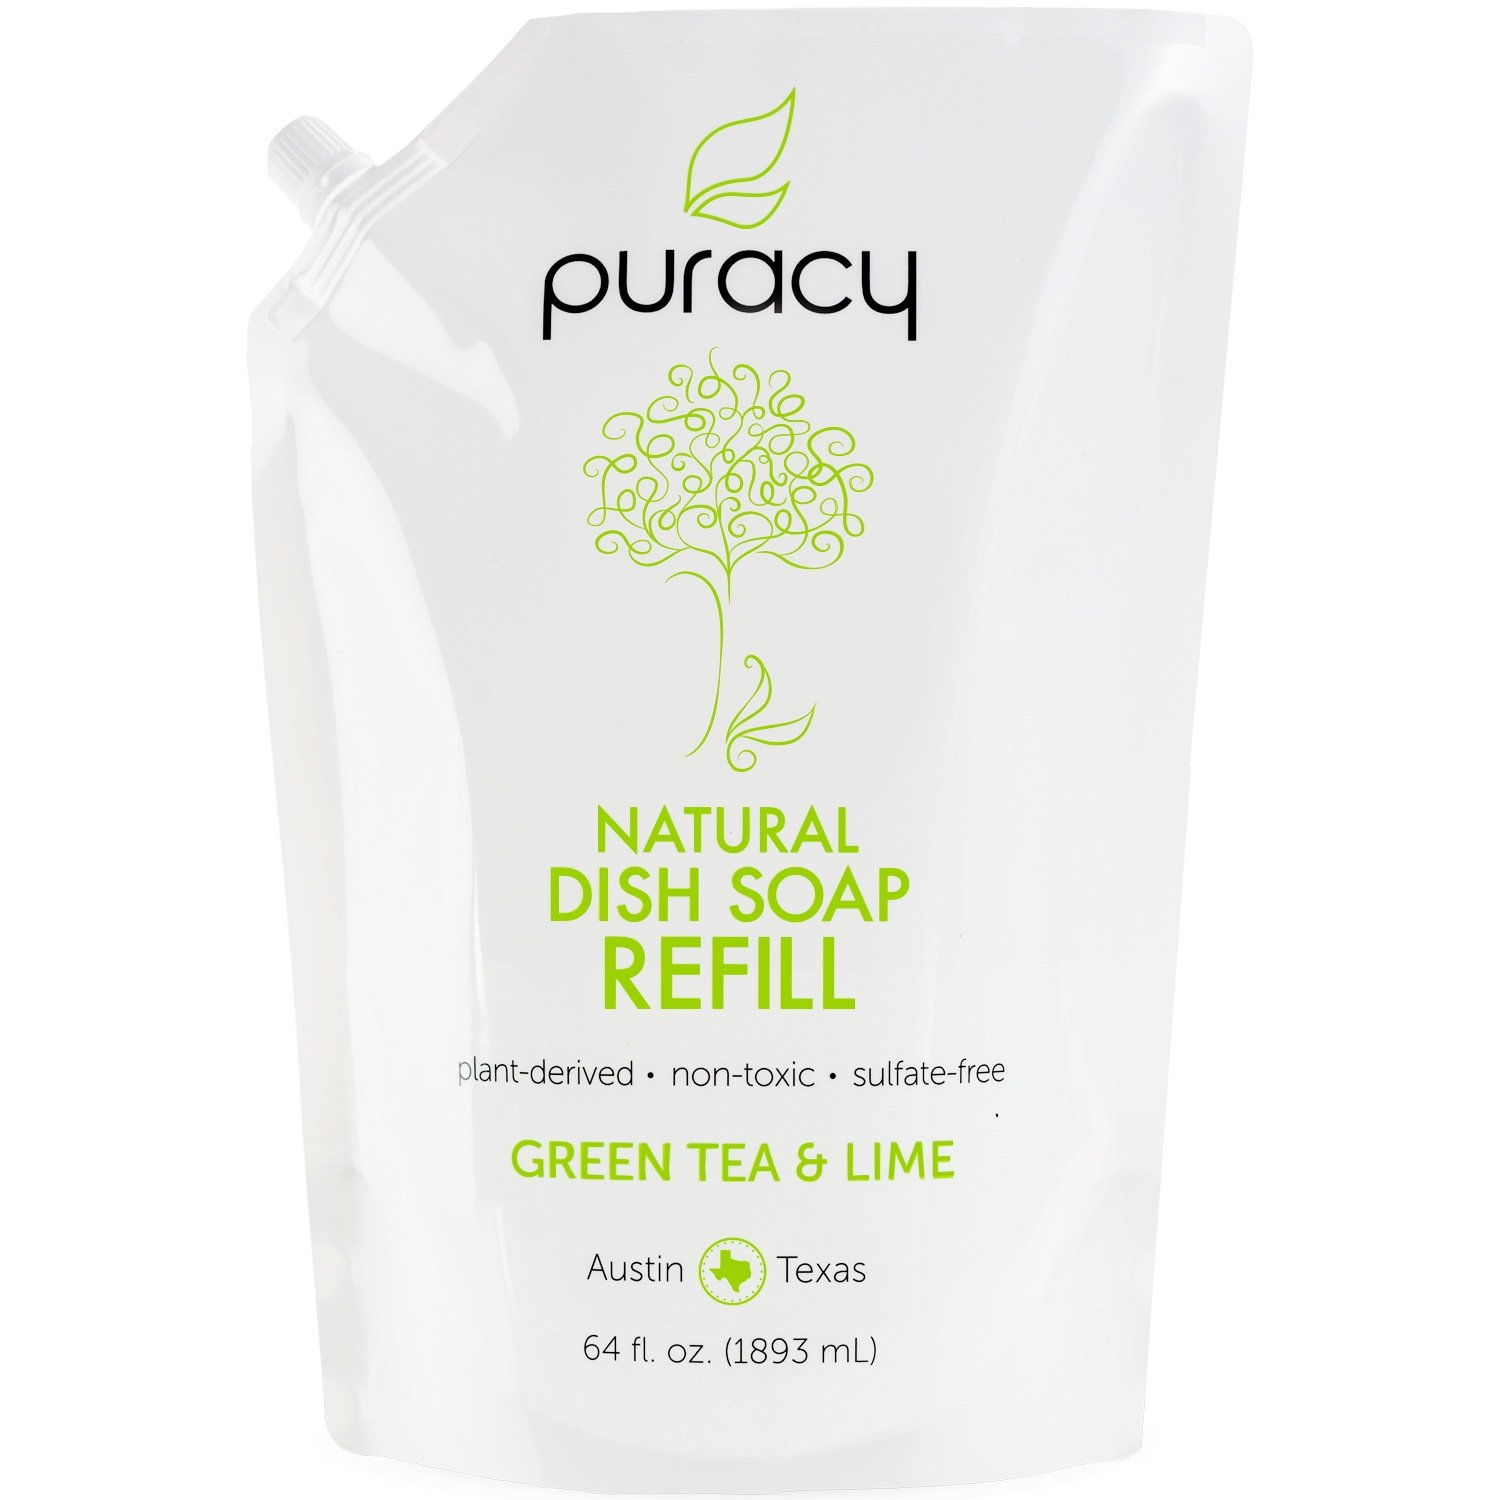 Puracy Natural Liquid Dish Soap Refill, Sulfate-Free Dishwashing Detergent, Green Tea and Lime, 64 Fluid Ounce Pouch